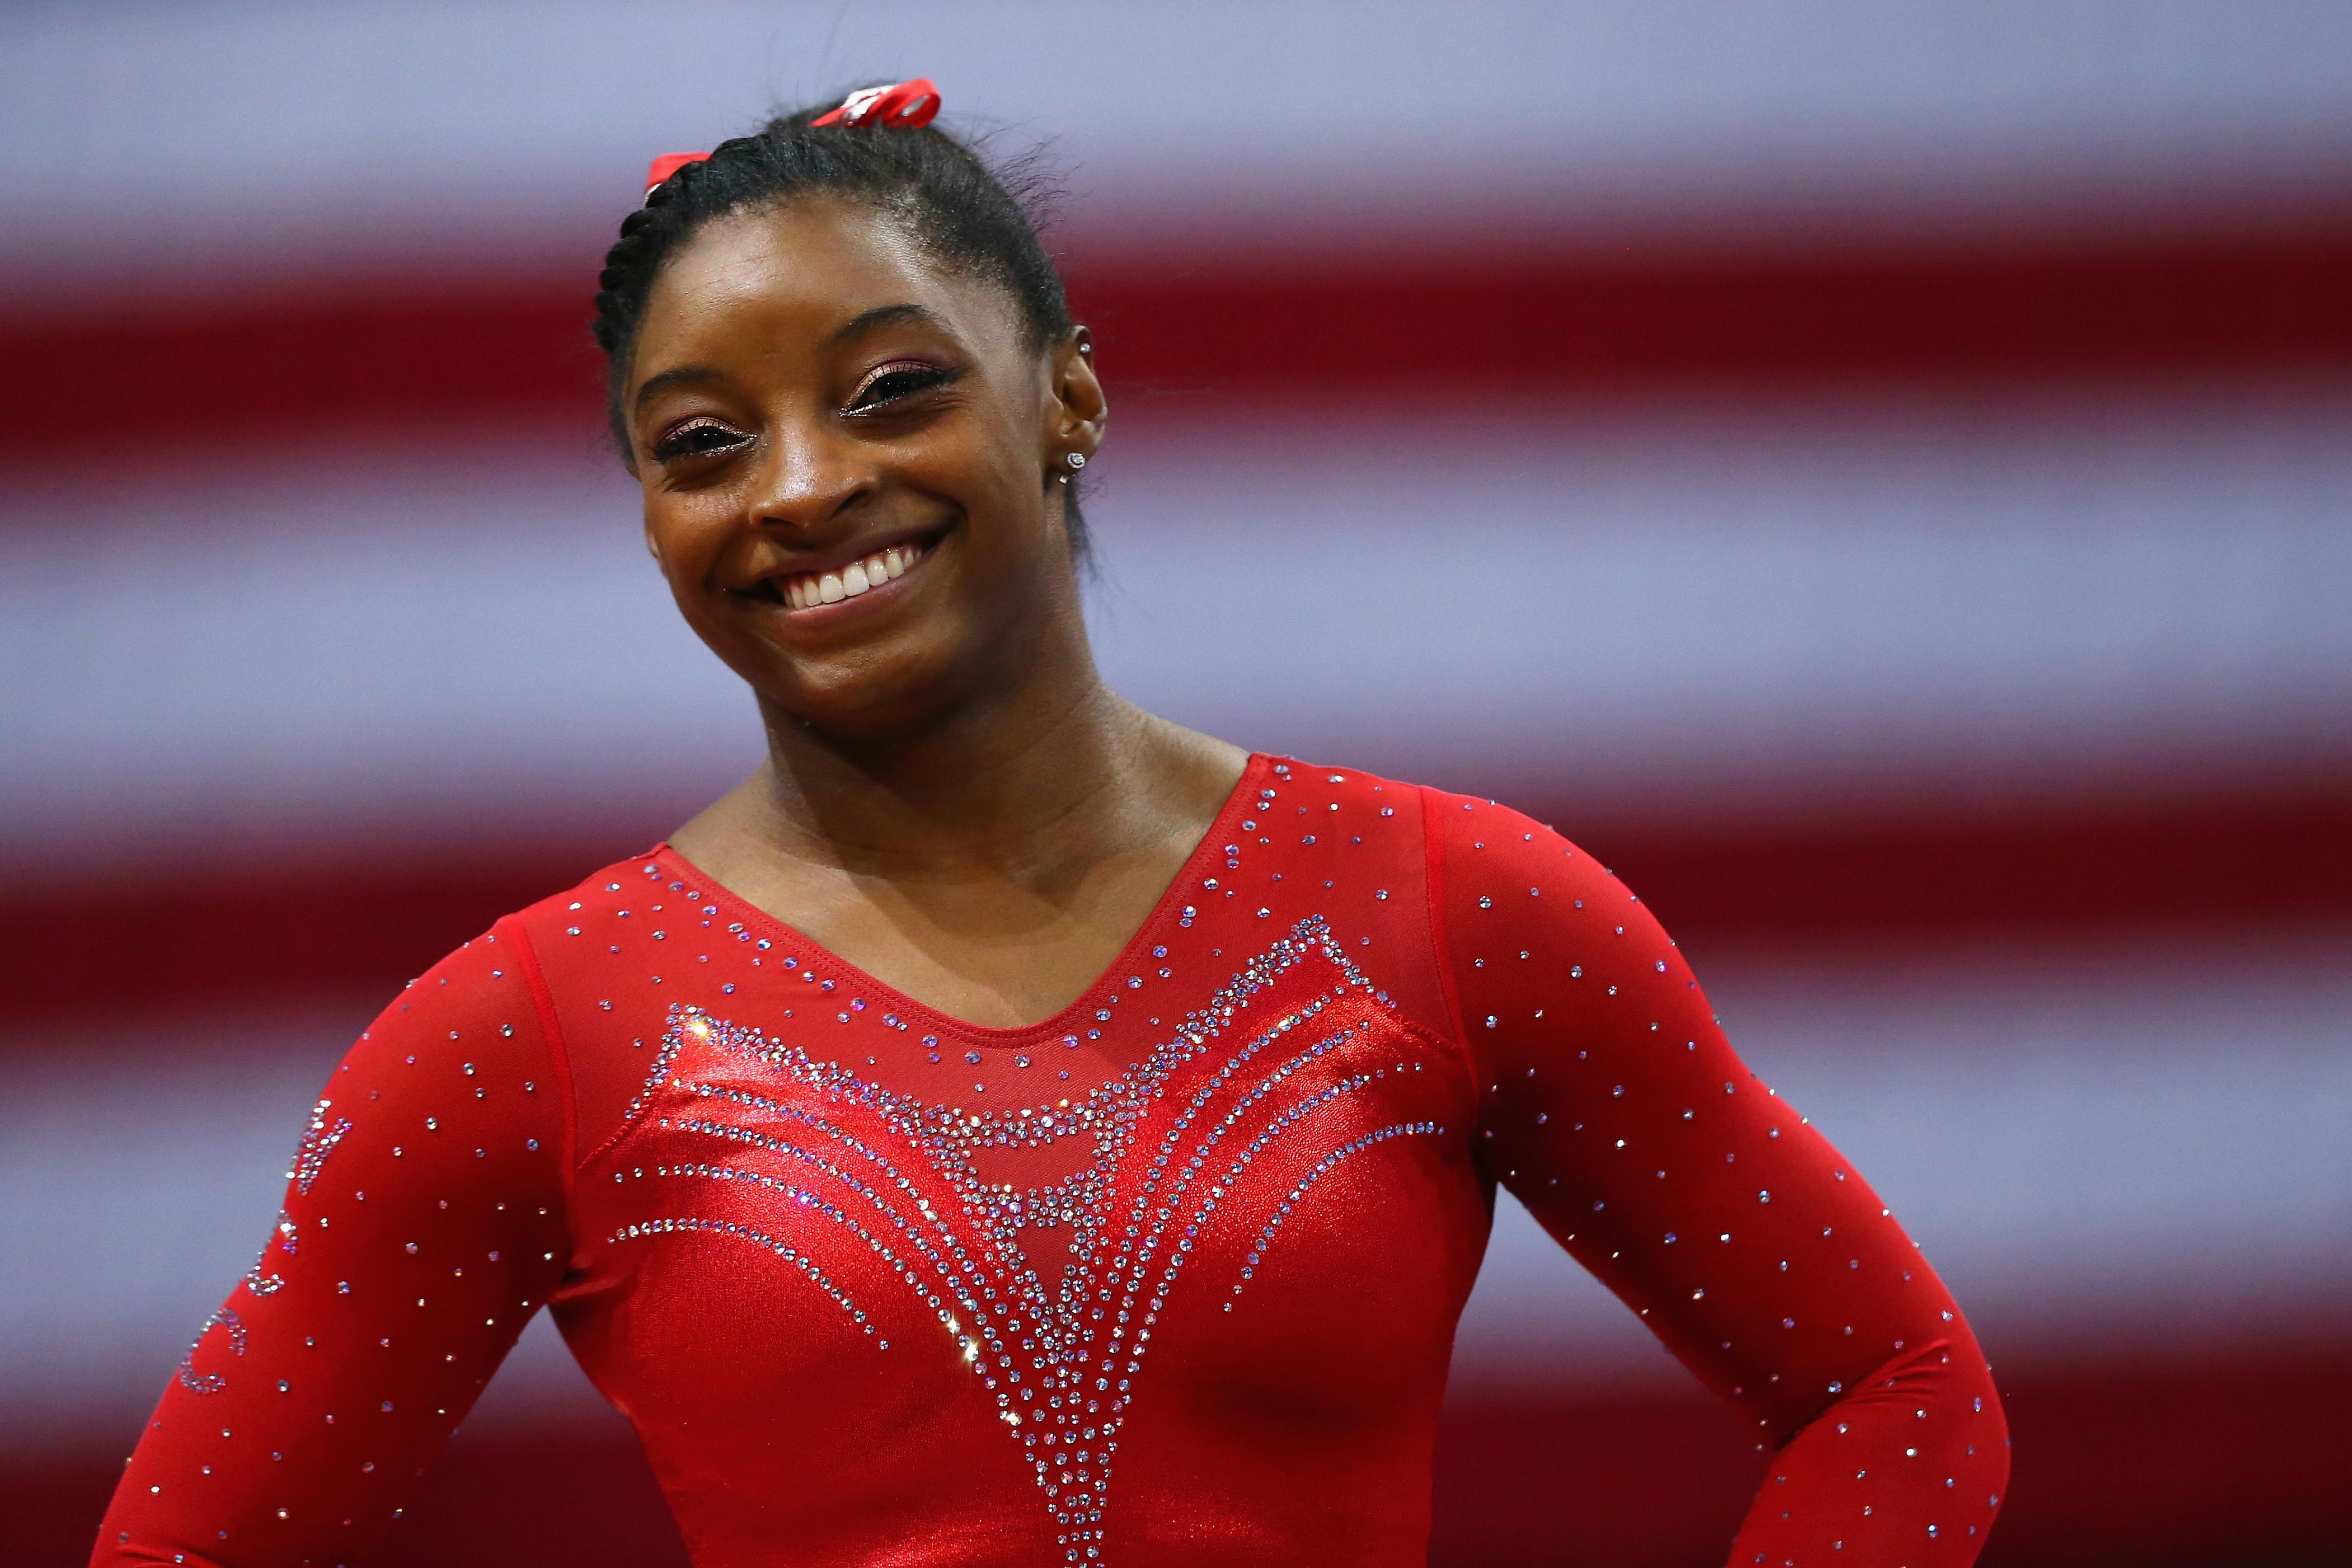 Olympic Star Simone Biles Says She Was Also Sexually Assaulted by Team Doctor